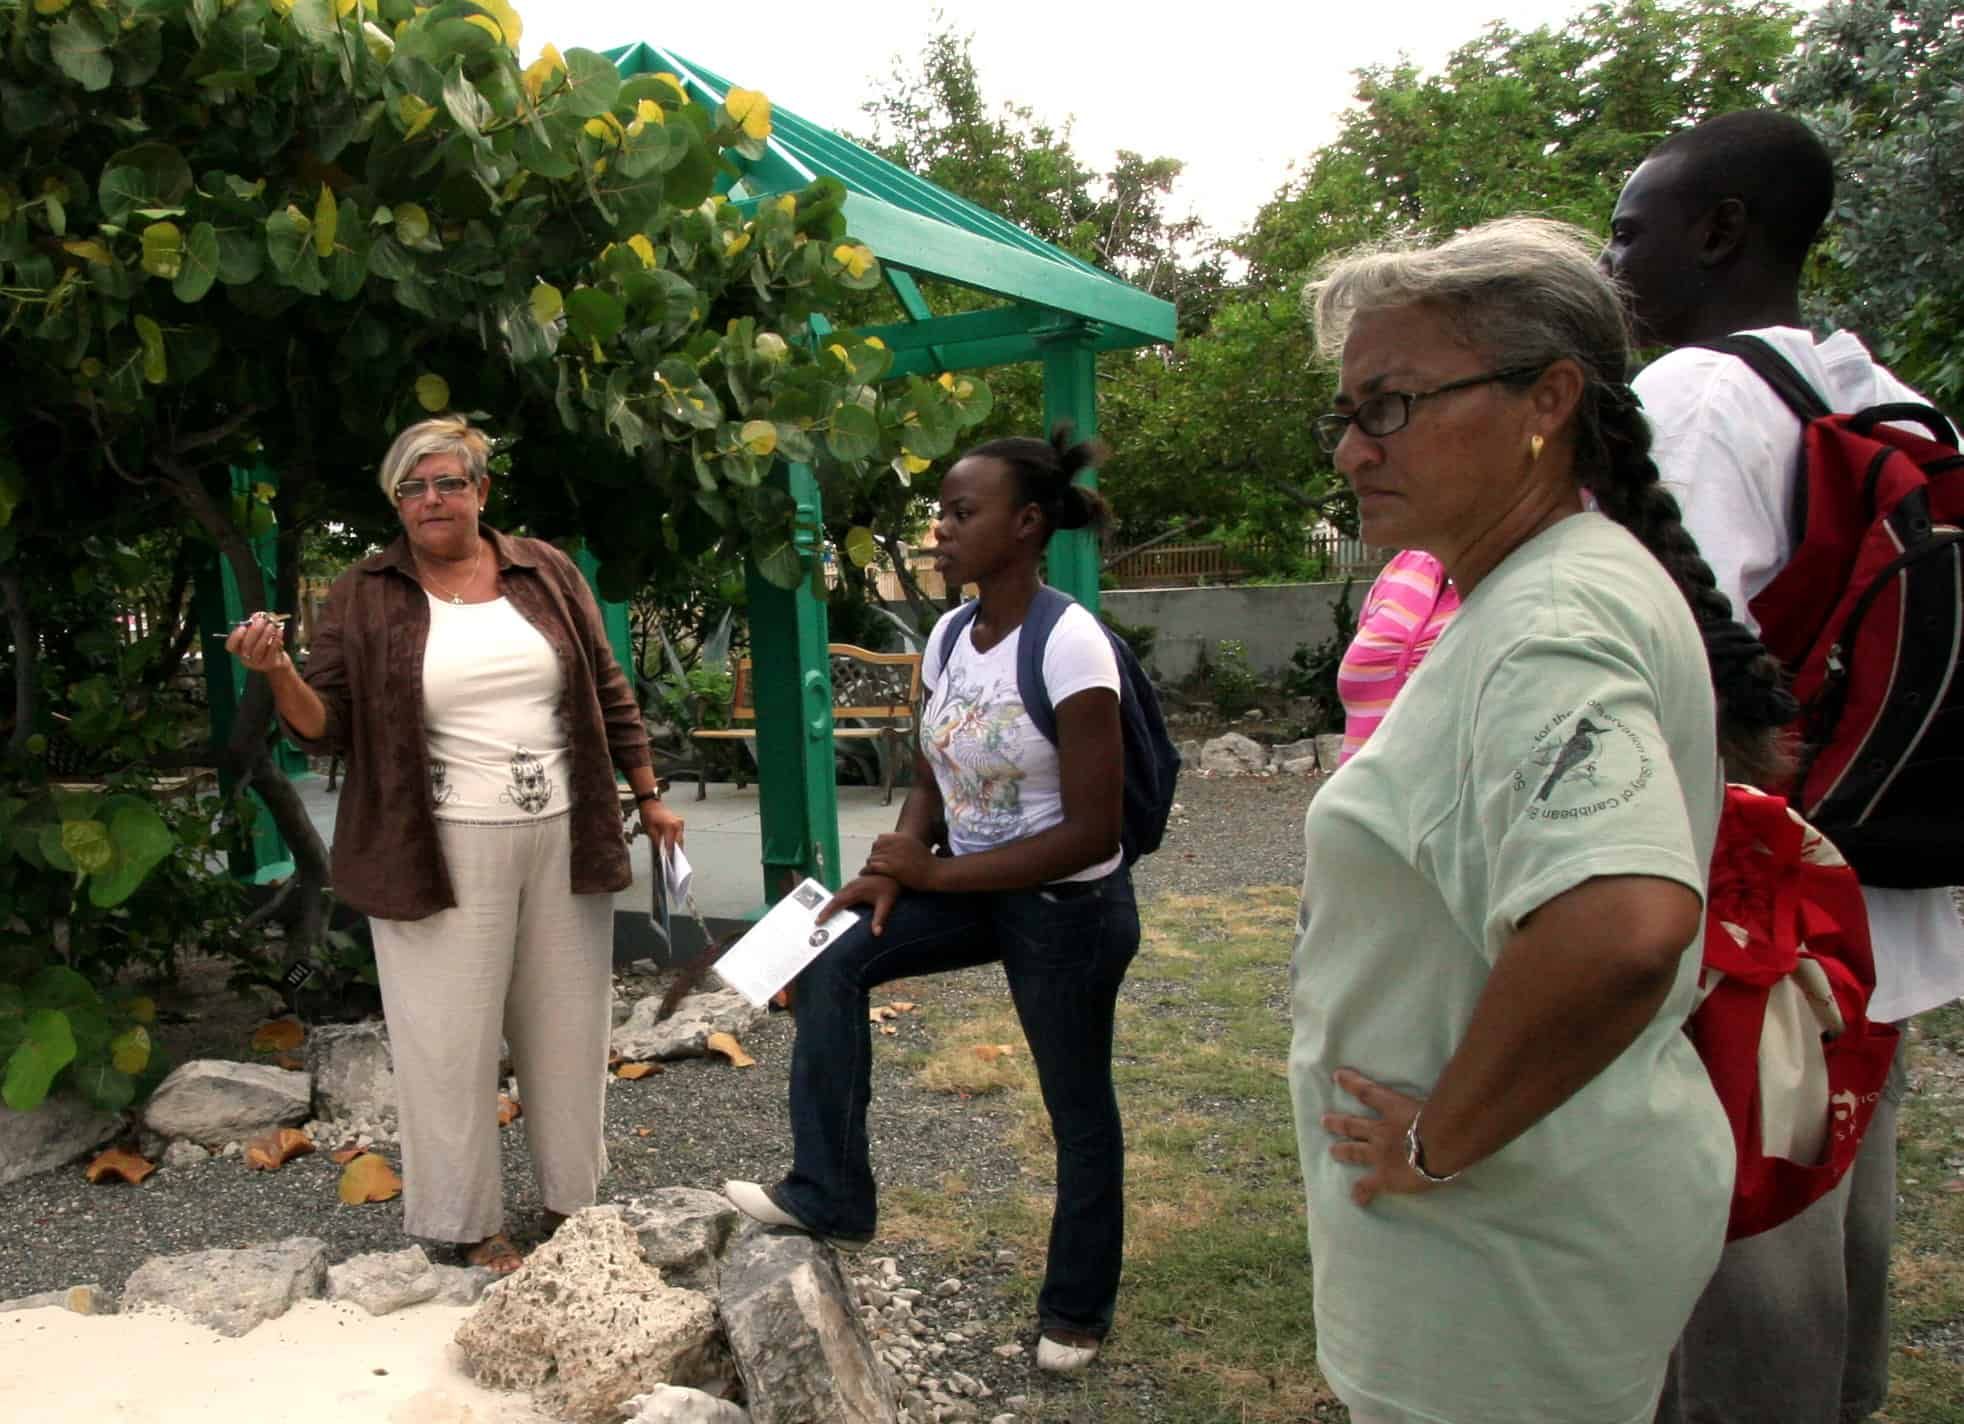 Museum Director, Pat Saxton shows a group around the TCI National Museum garden on Grand Turk; Copyright: Mike Pienkowski